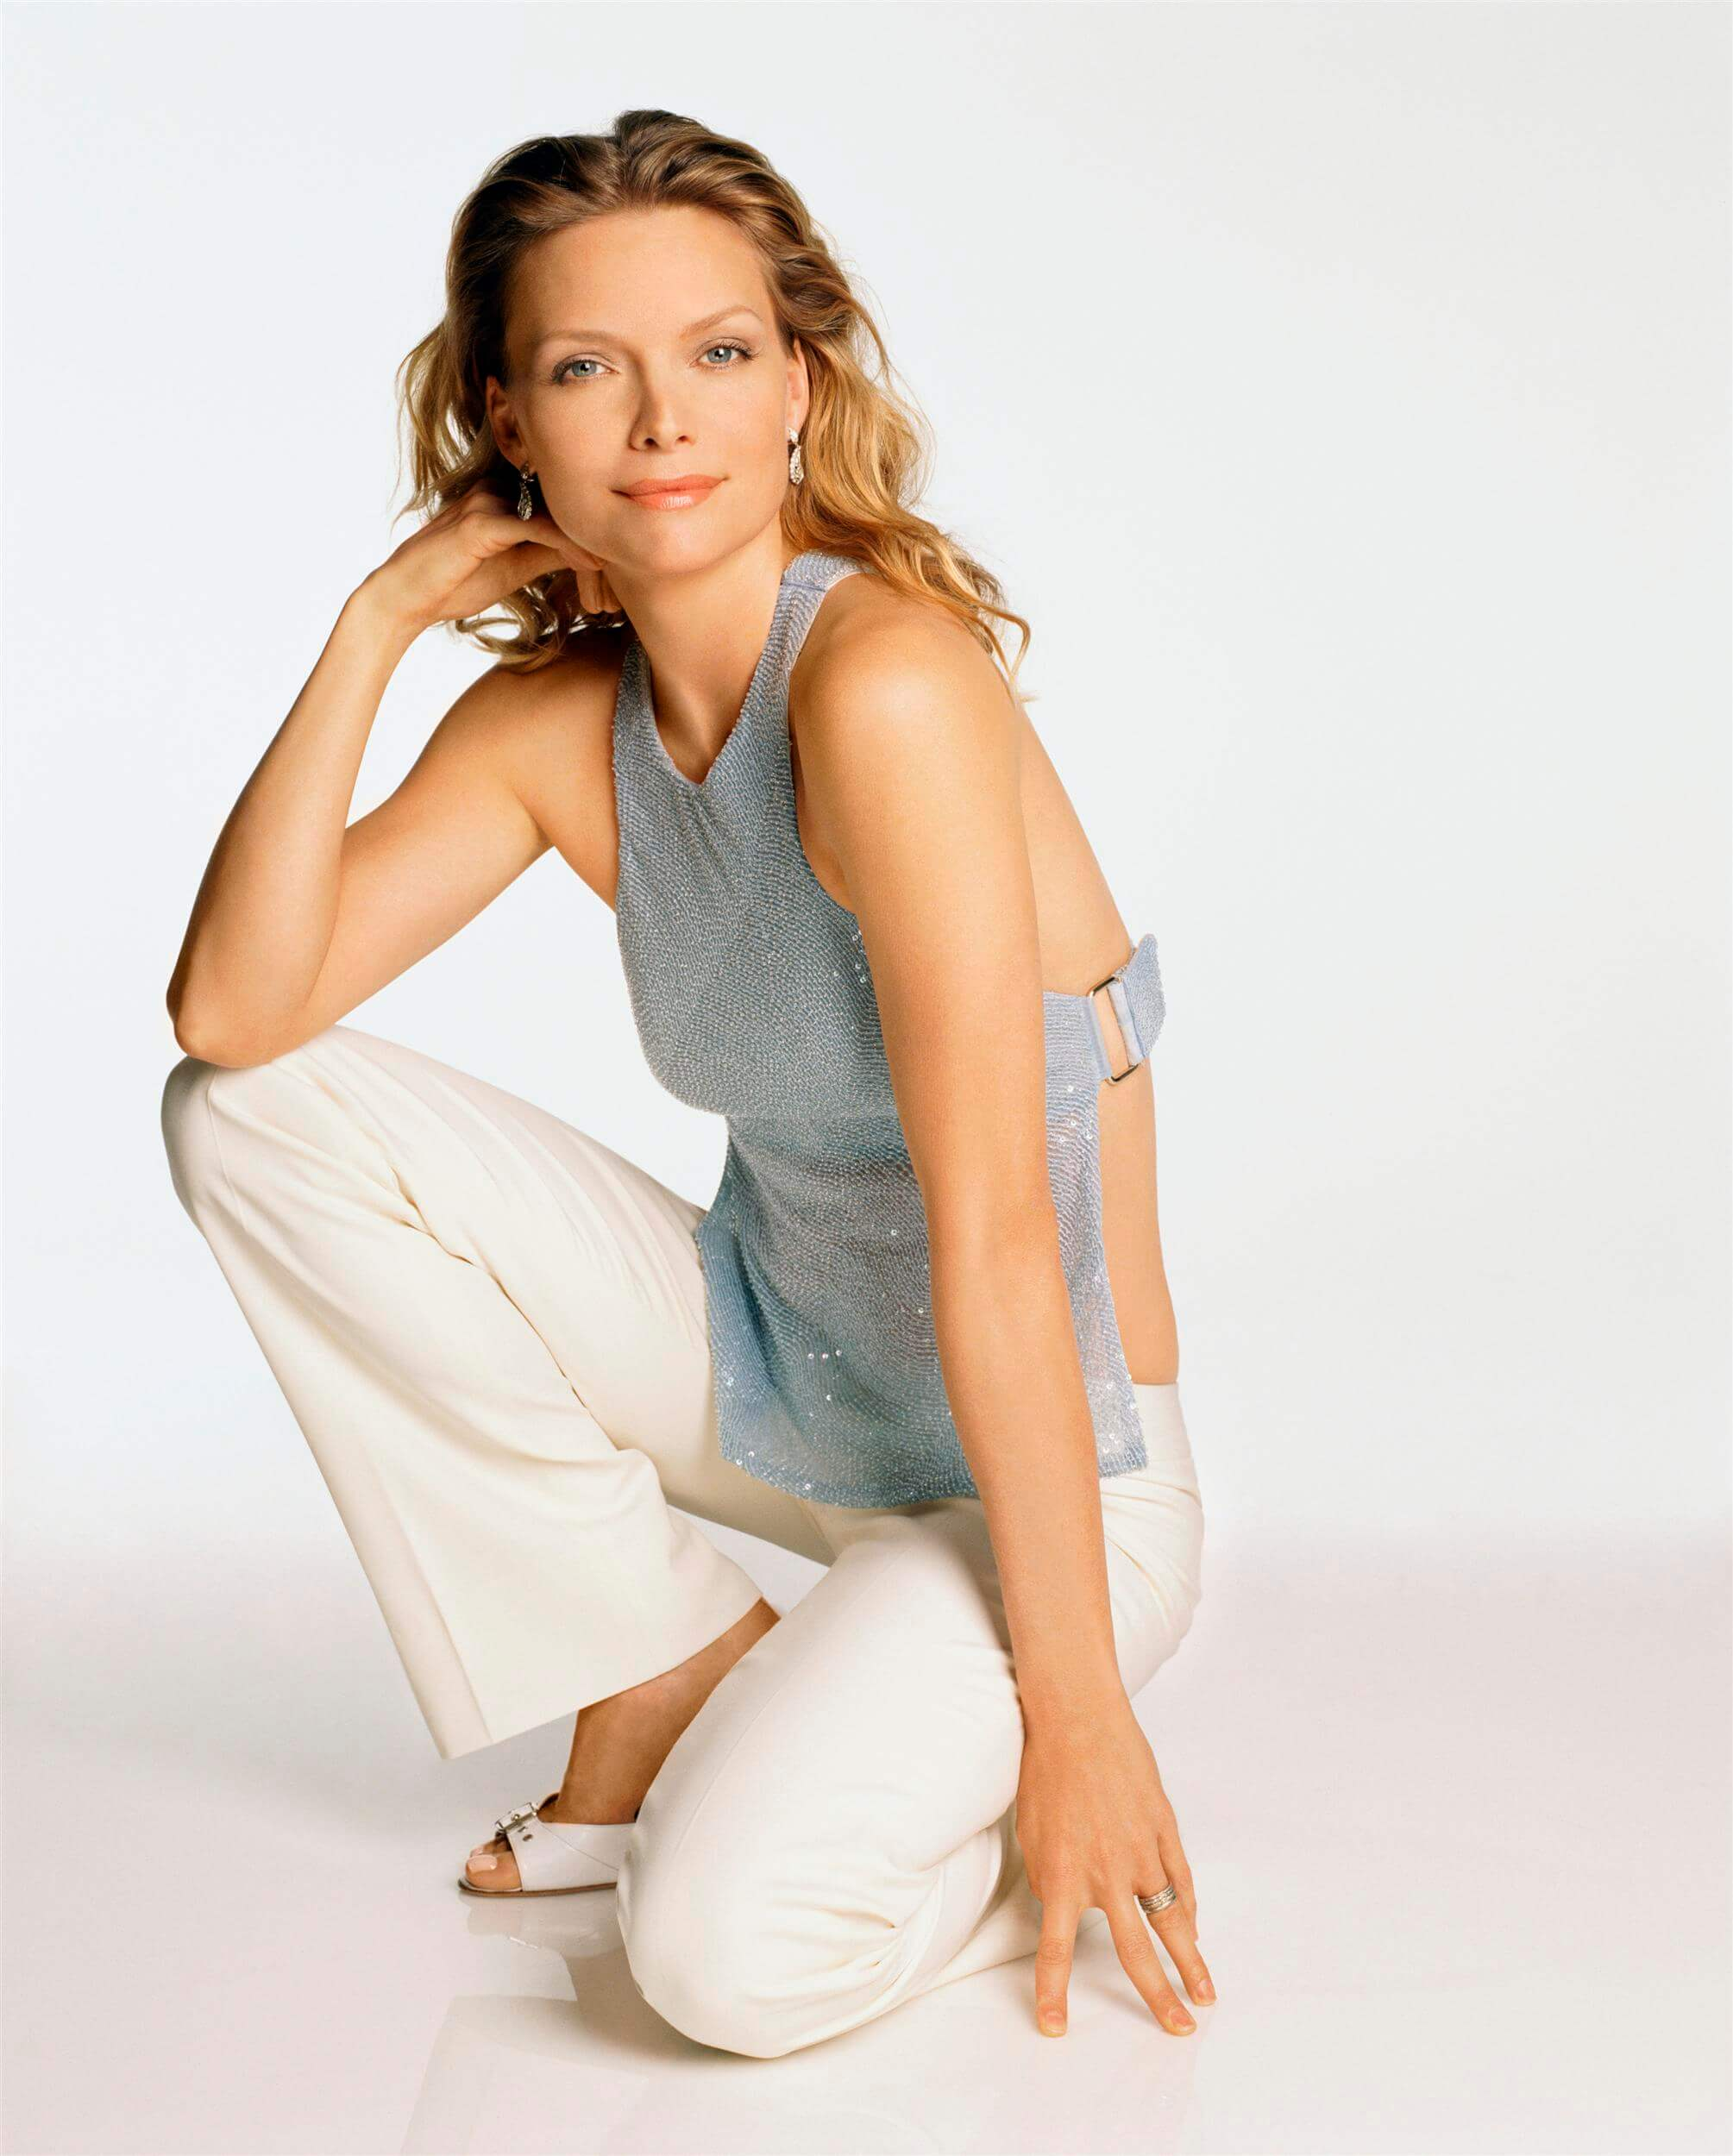 Michelle Pfeiffer feet awesome